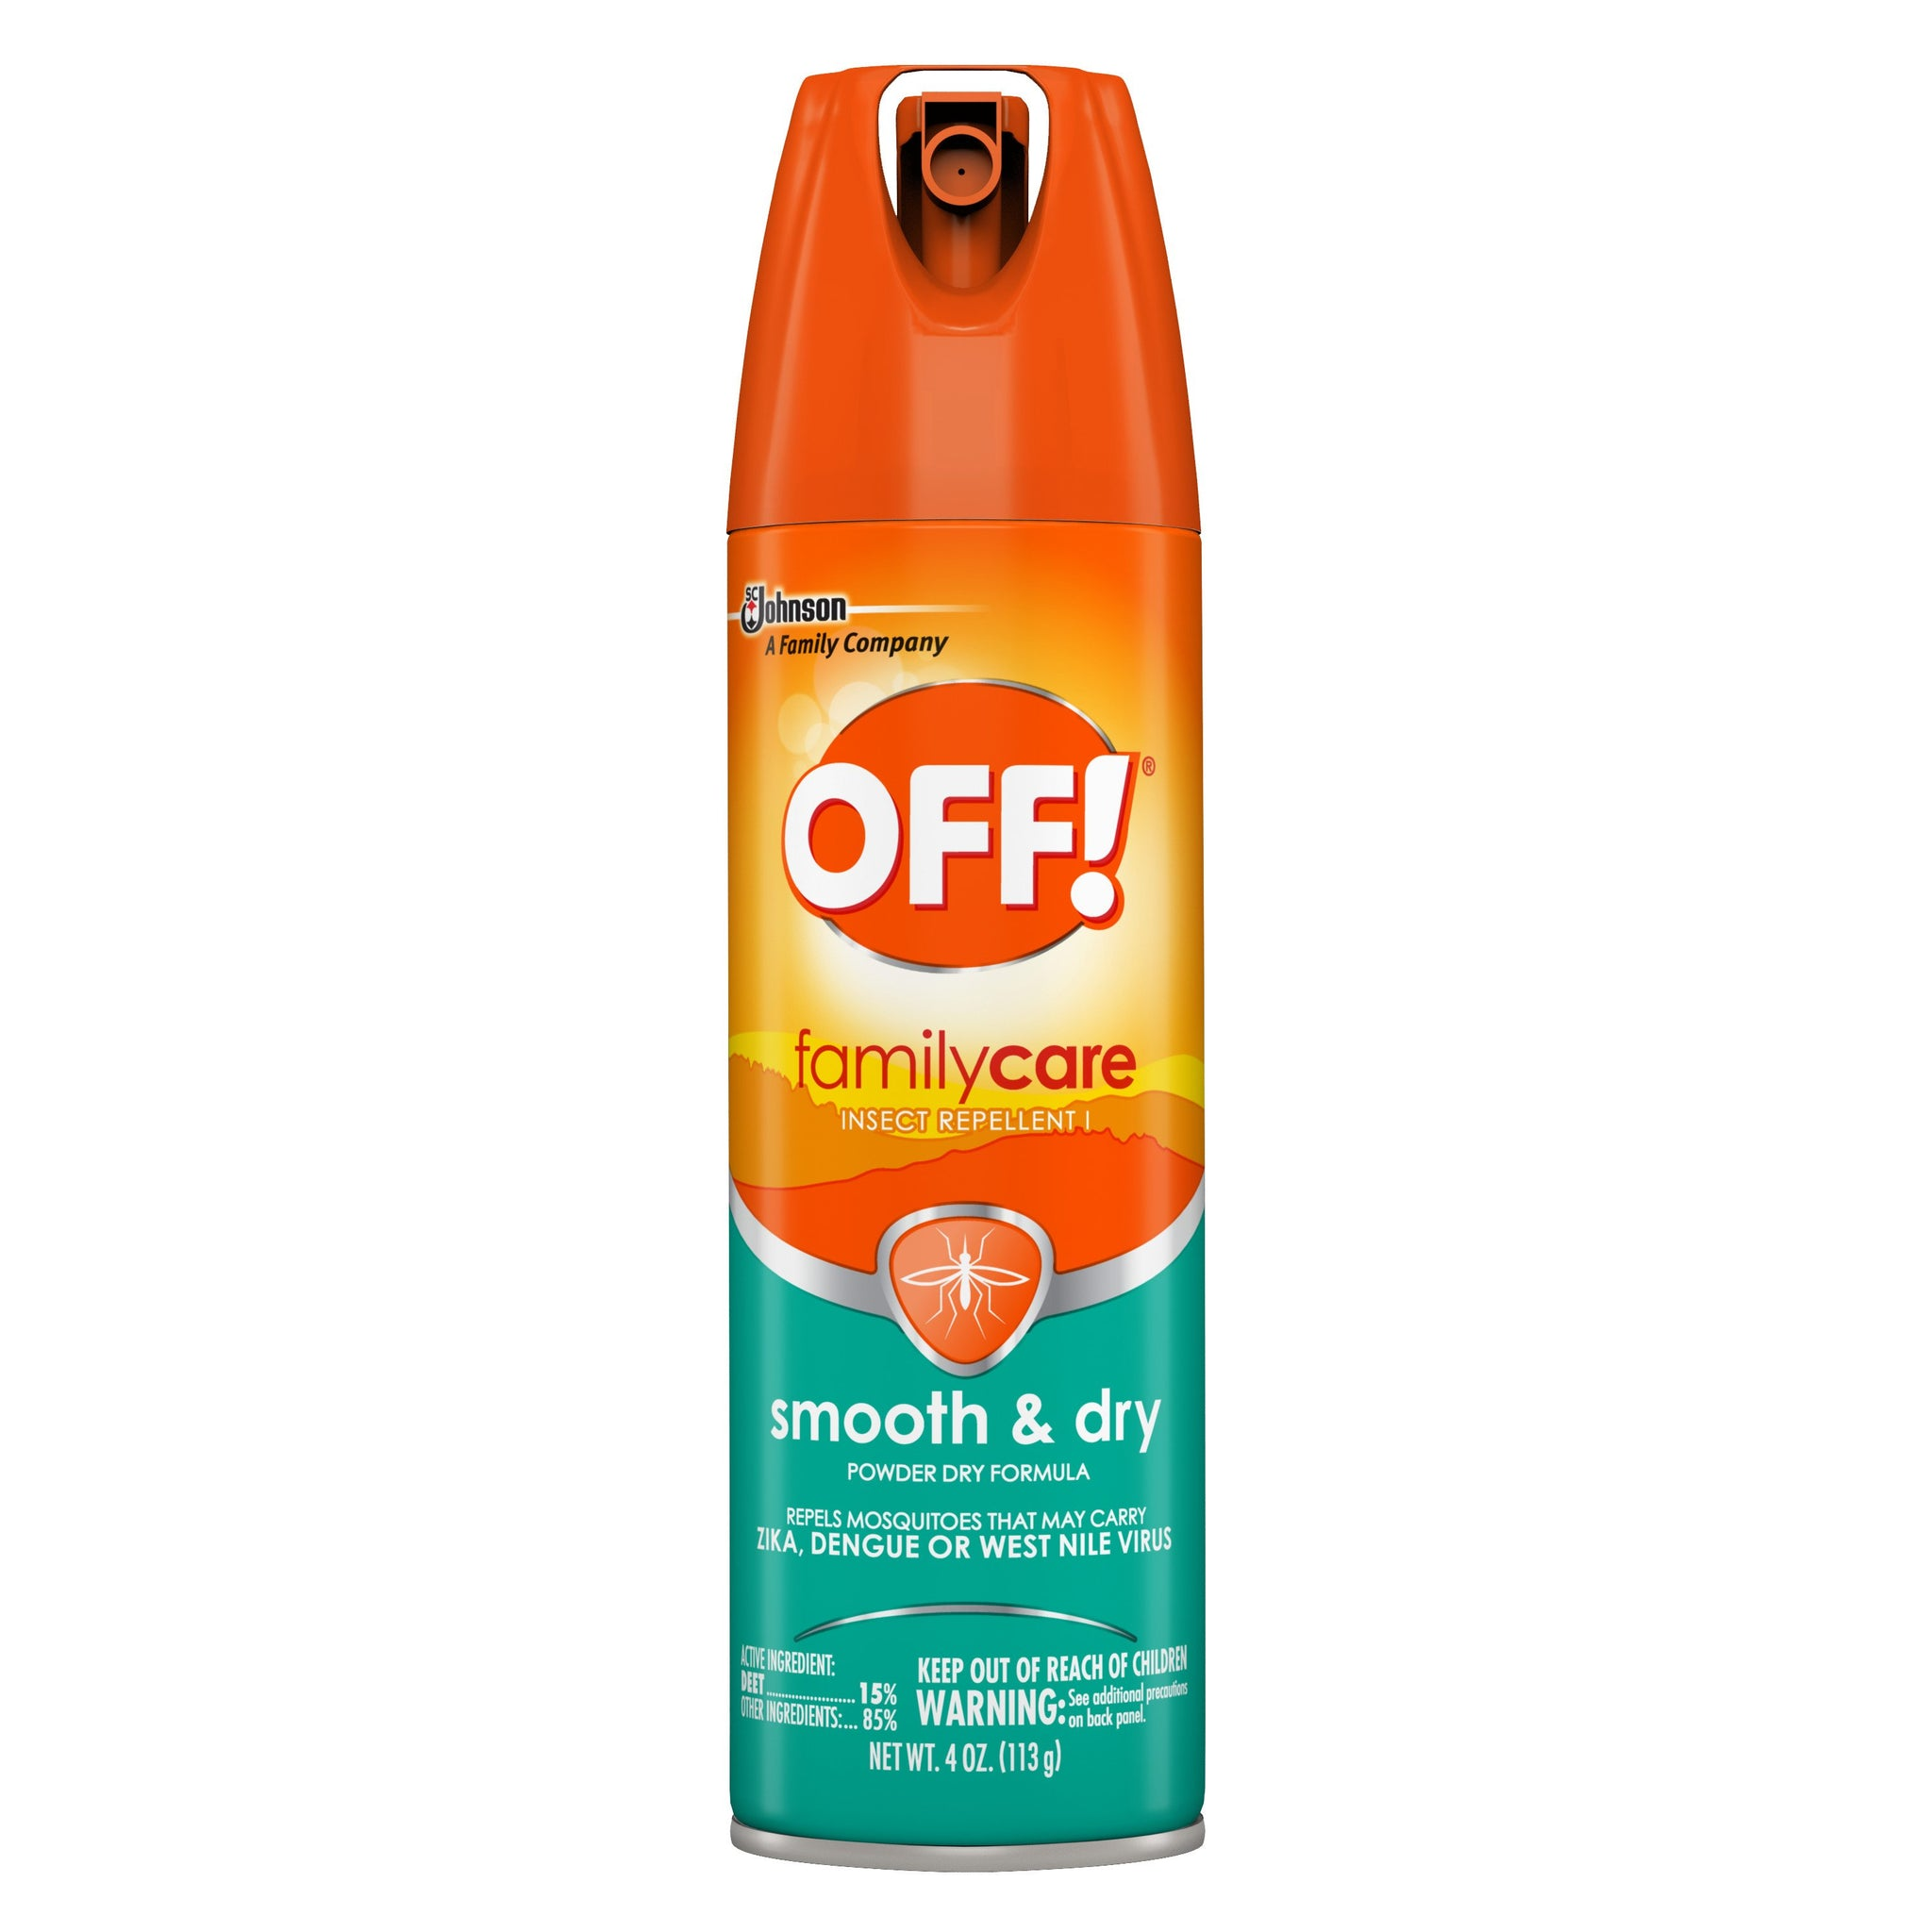 gre>Off Insect Repellent - Family Care - 6oz